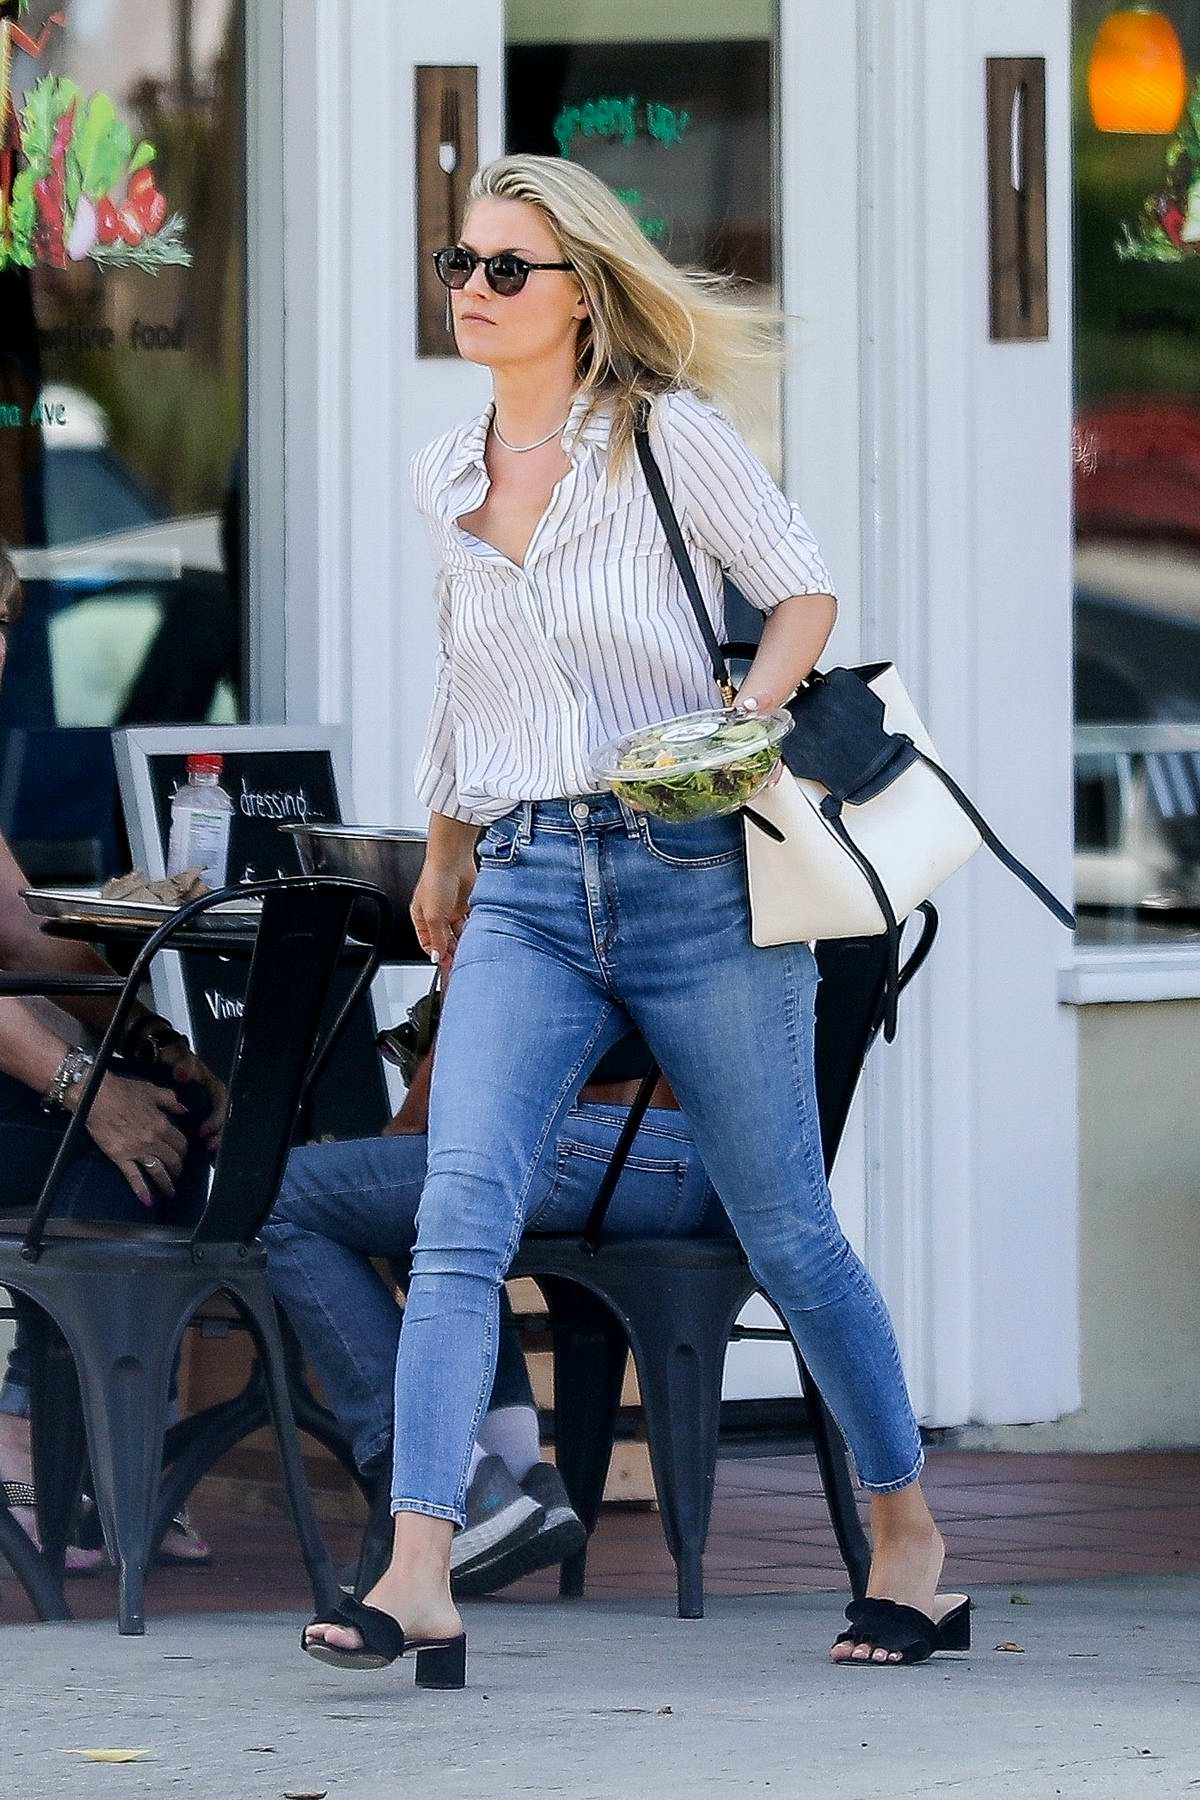 Ali Larter grabs a healthy salad after visiting the Beauty Park Spa in Santa Monica, California